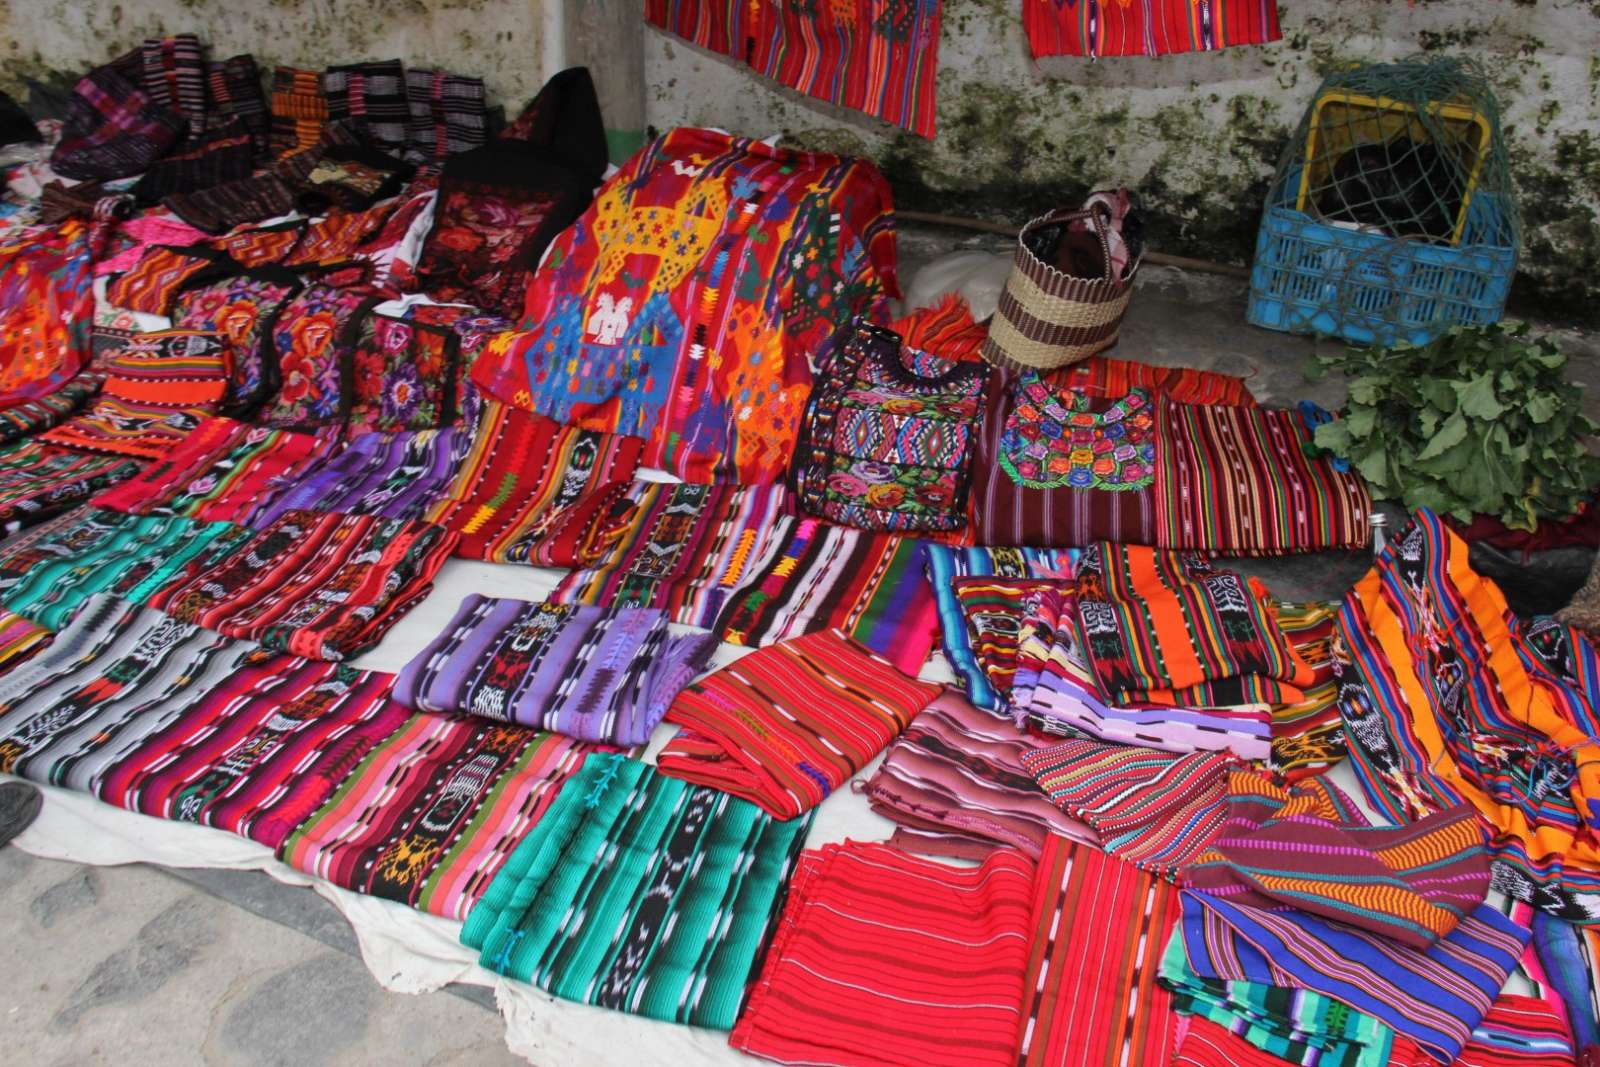 Floor stall at the market in Chichicastenango, Guatemala